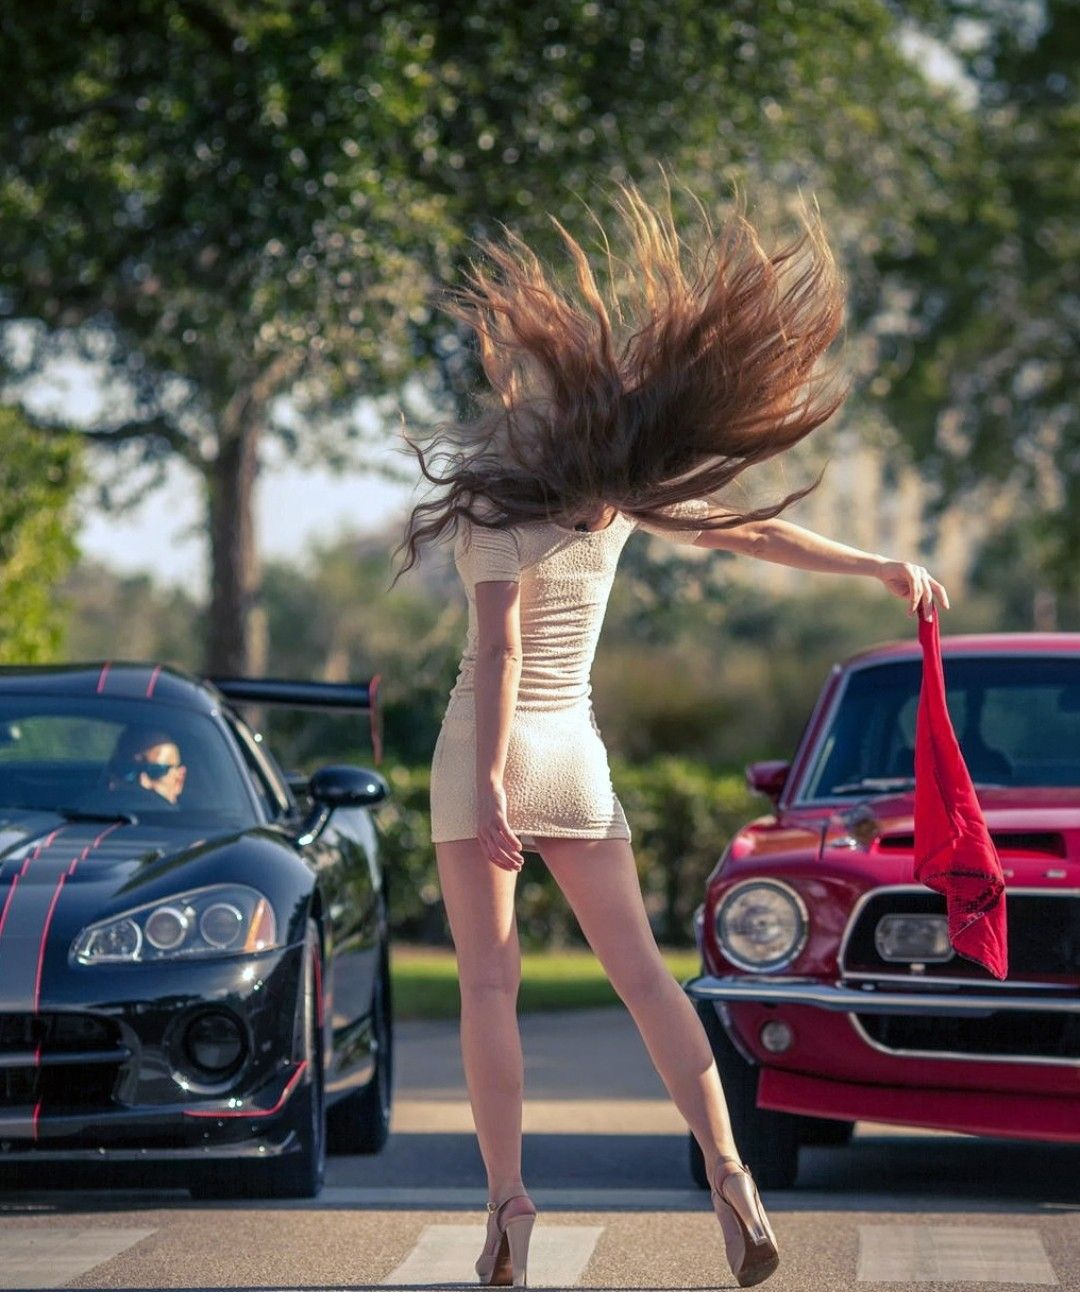 Pin On Fast Curves Cool cars with girls wallpaper free hd